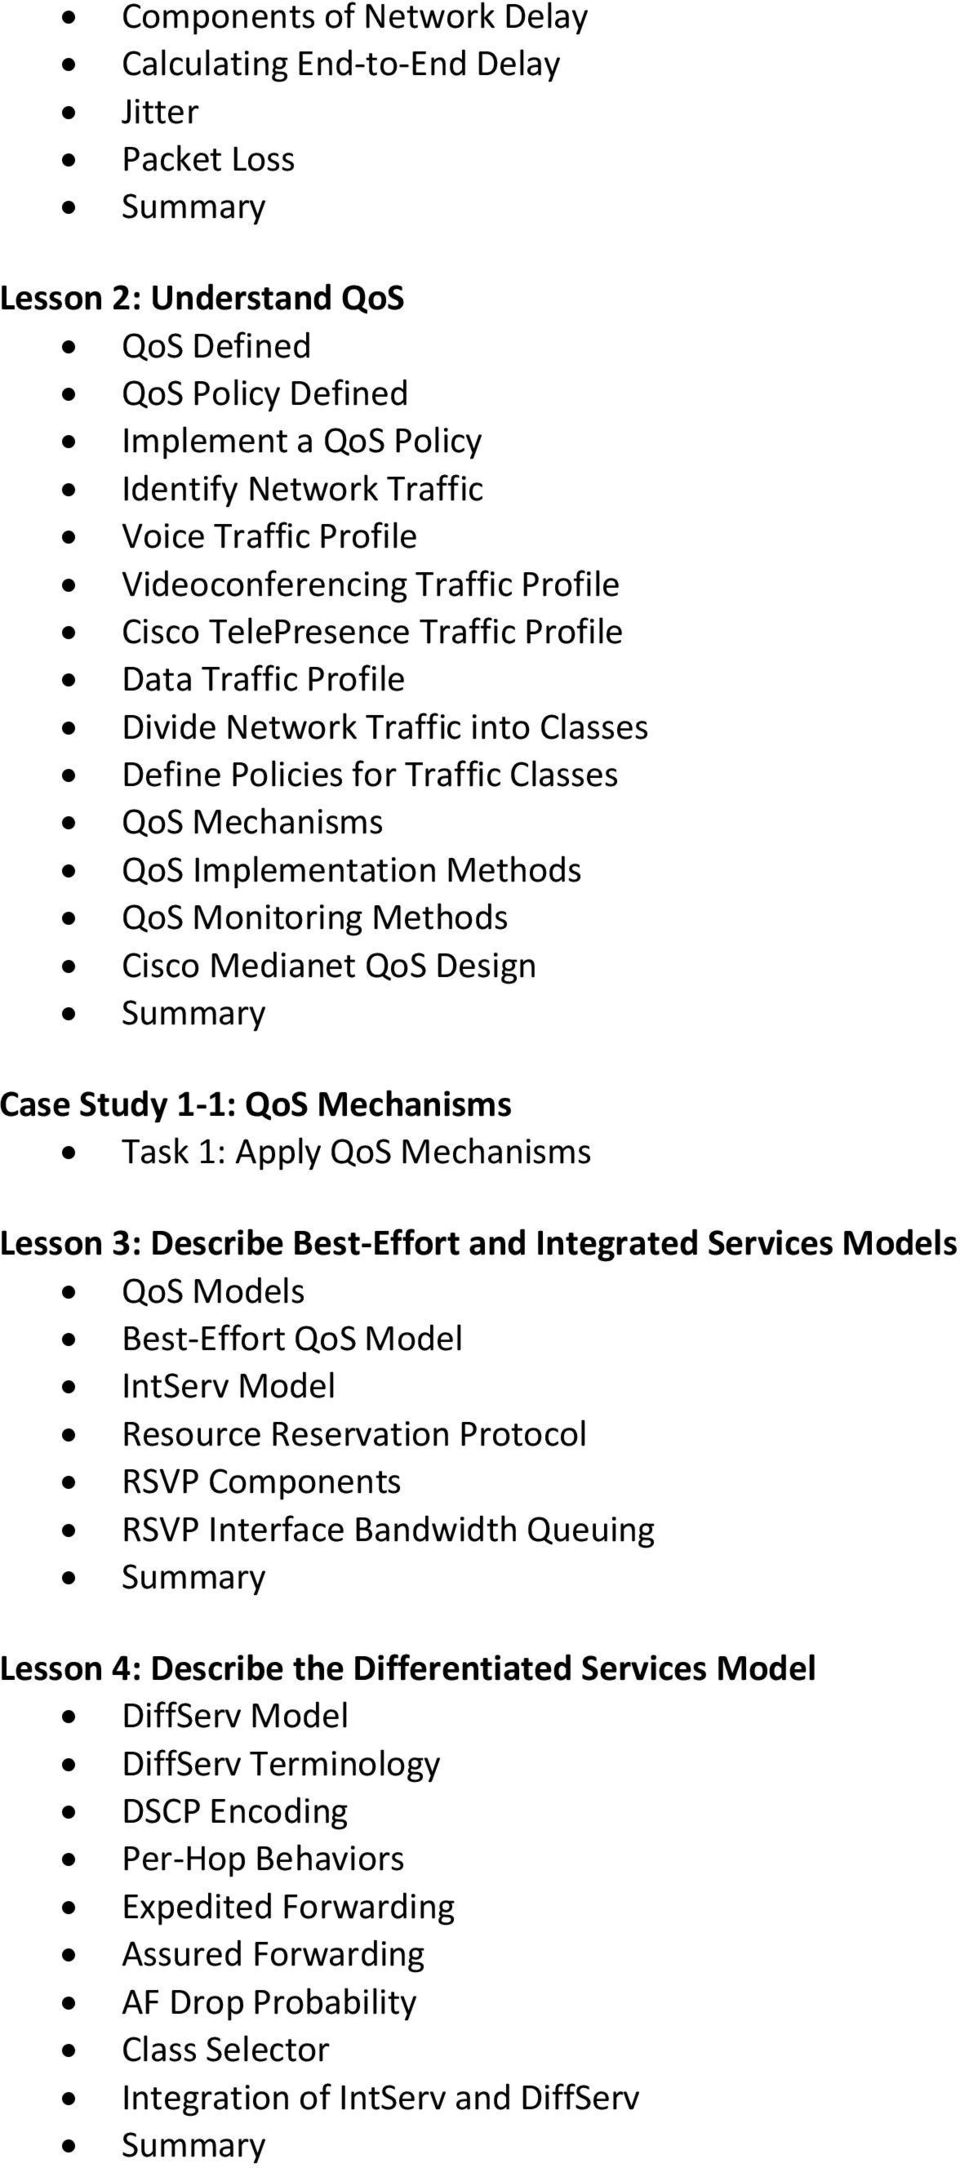 Implementation Methods QoS Monitoring Methods Cisco Medianet QoS Design Case Study 1-1: QoS Mechanisms Task 1: Apply QoS Mechanisms Lesson 3: Describe Best-Effort and Integrated Services Models QoS